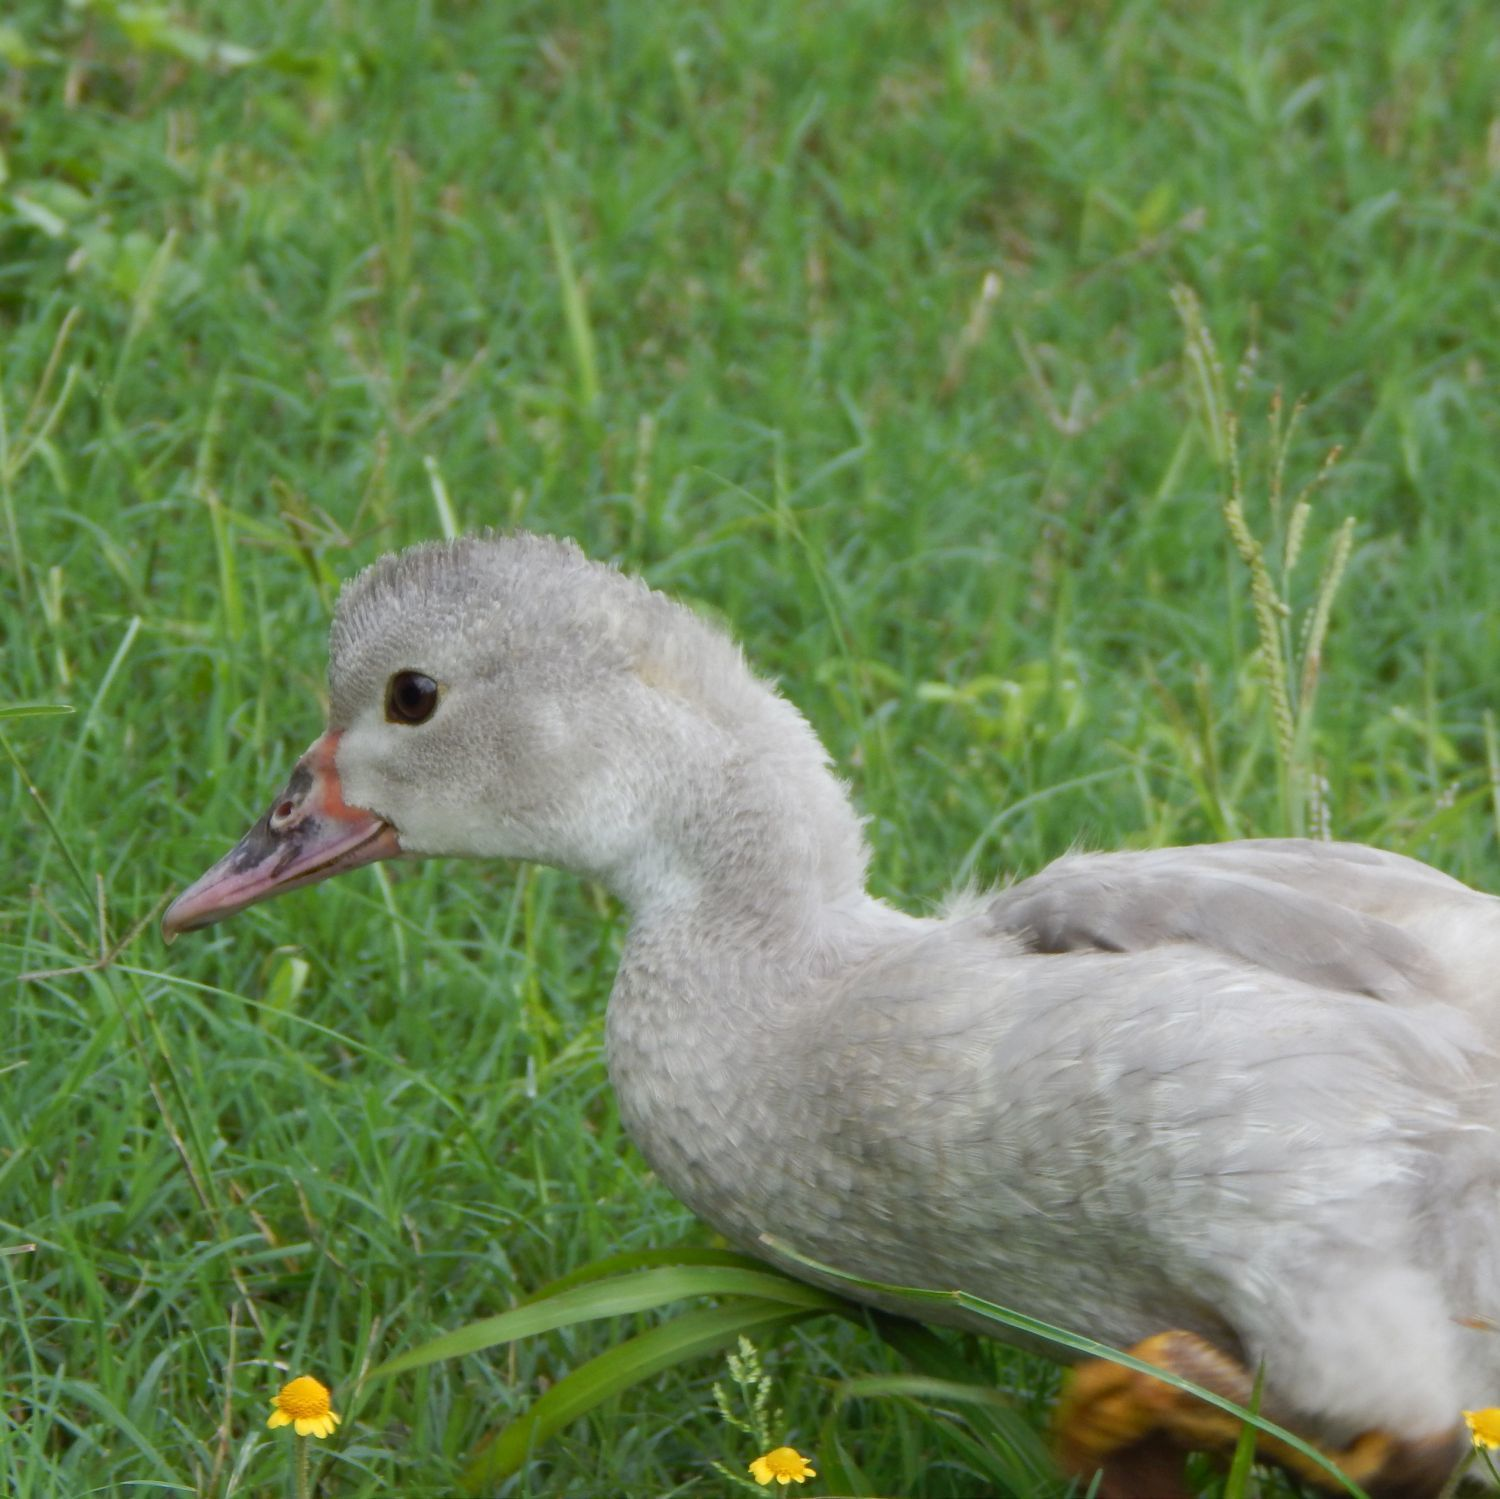 Misty, juvenile Muscovy, the epitome of cuteness.